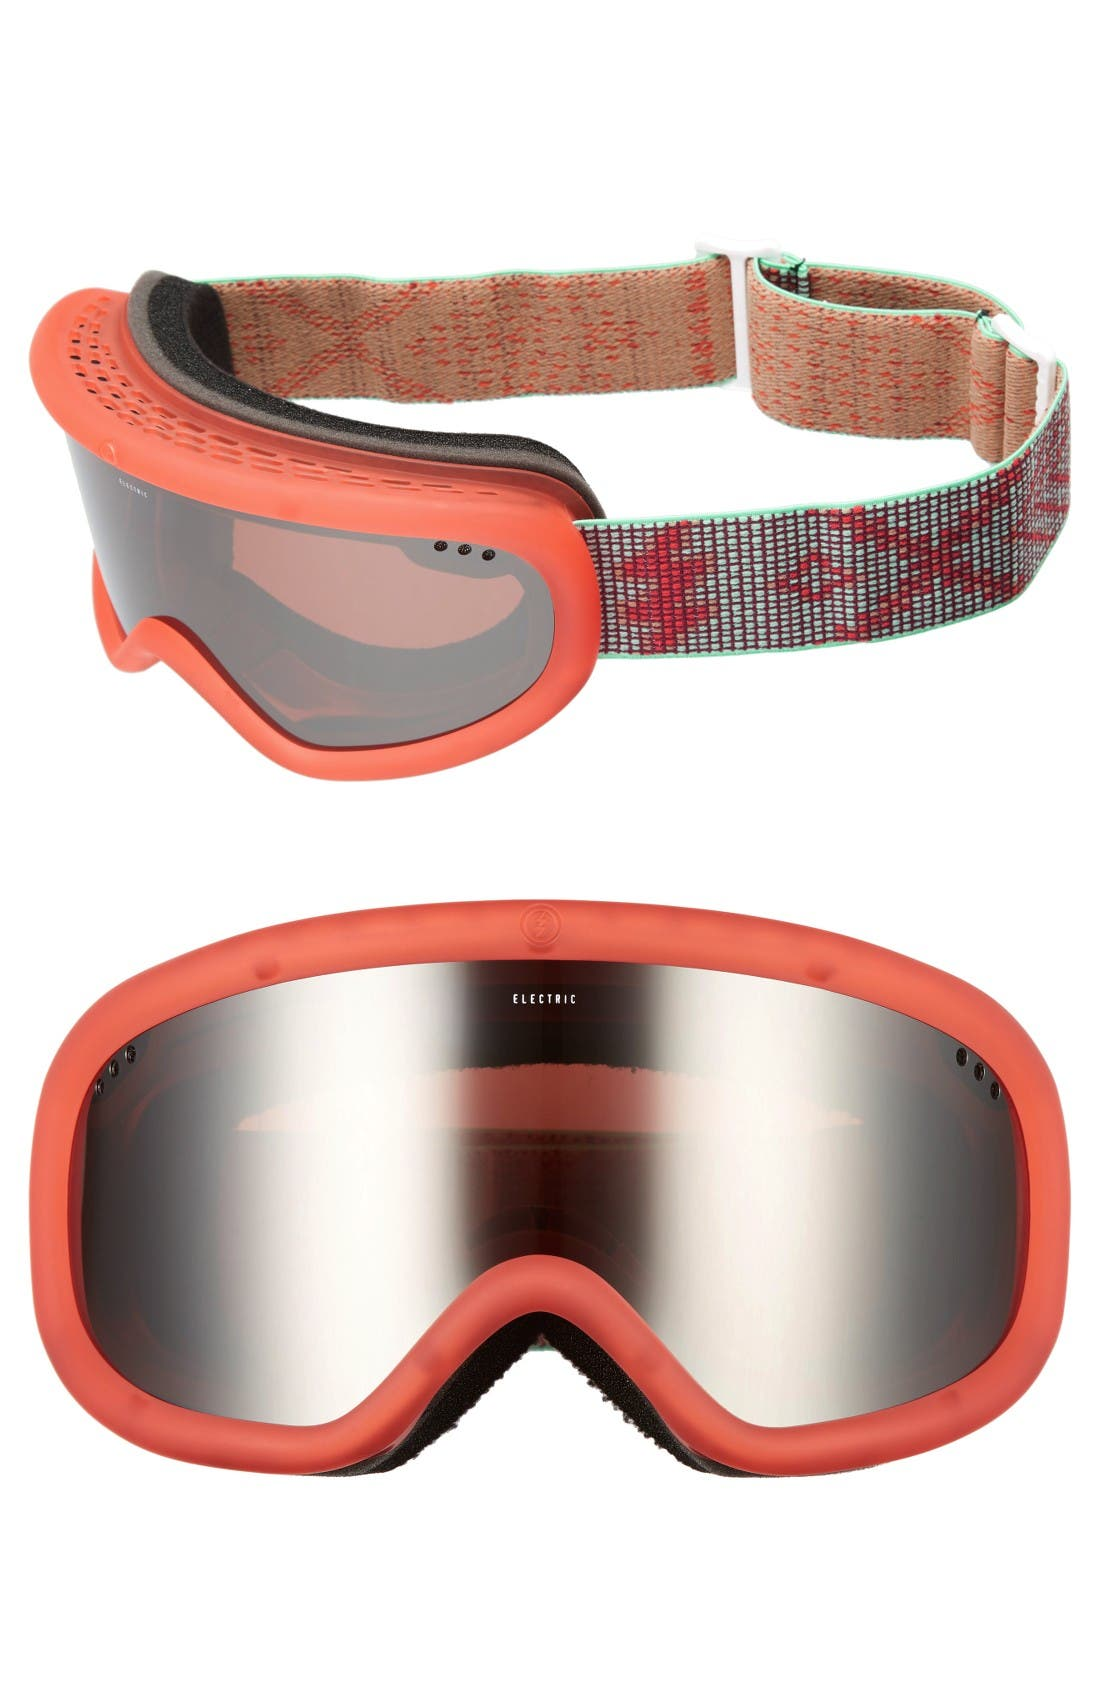 Charger 215mm Snow Goggles,                             Main thumbnail 1, color,                             Green/ Brose/ Silver